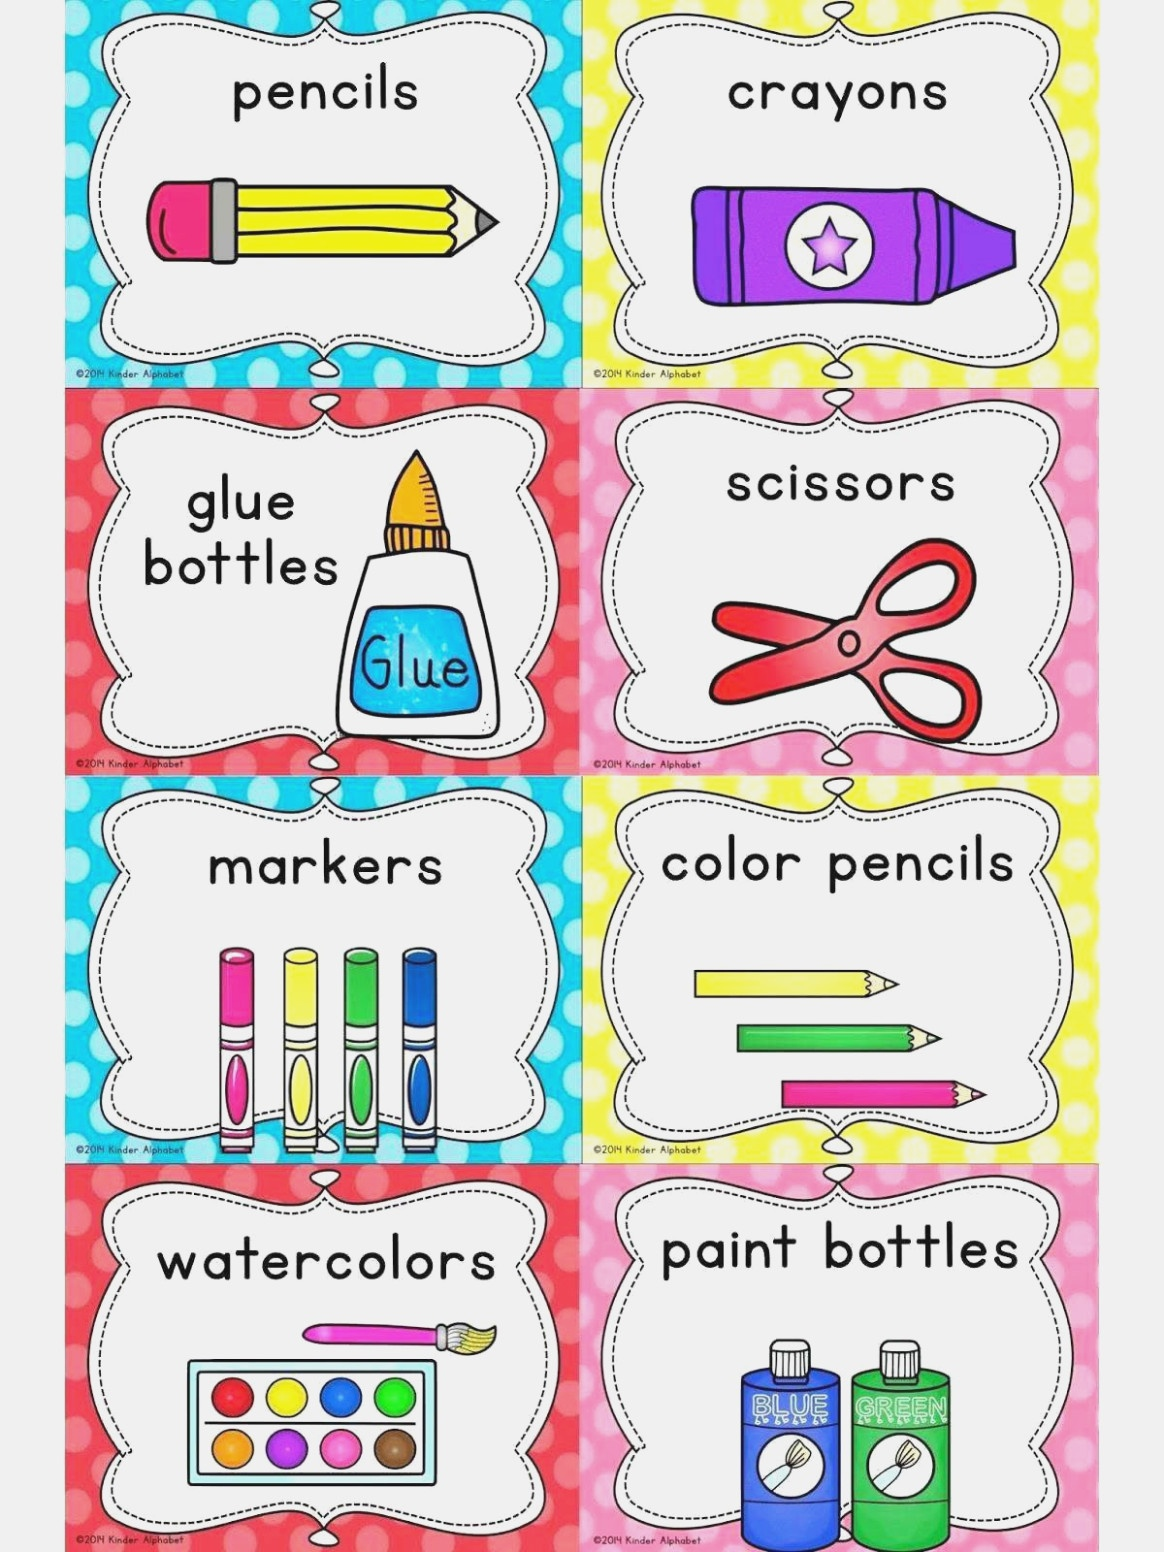 Five Mind-Blowing Reasons Why Crayon Name | Label Maker Ideas - Free Printable Crayon Name Tags